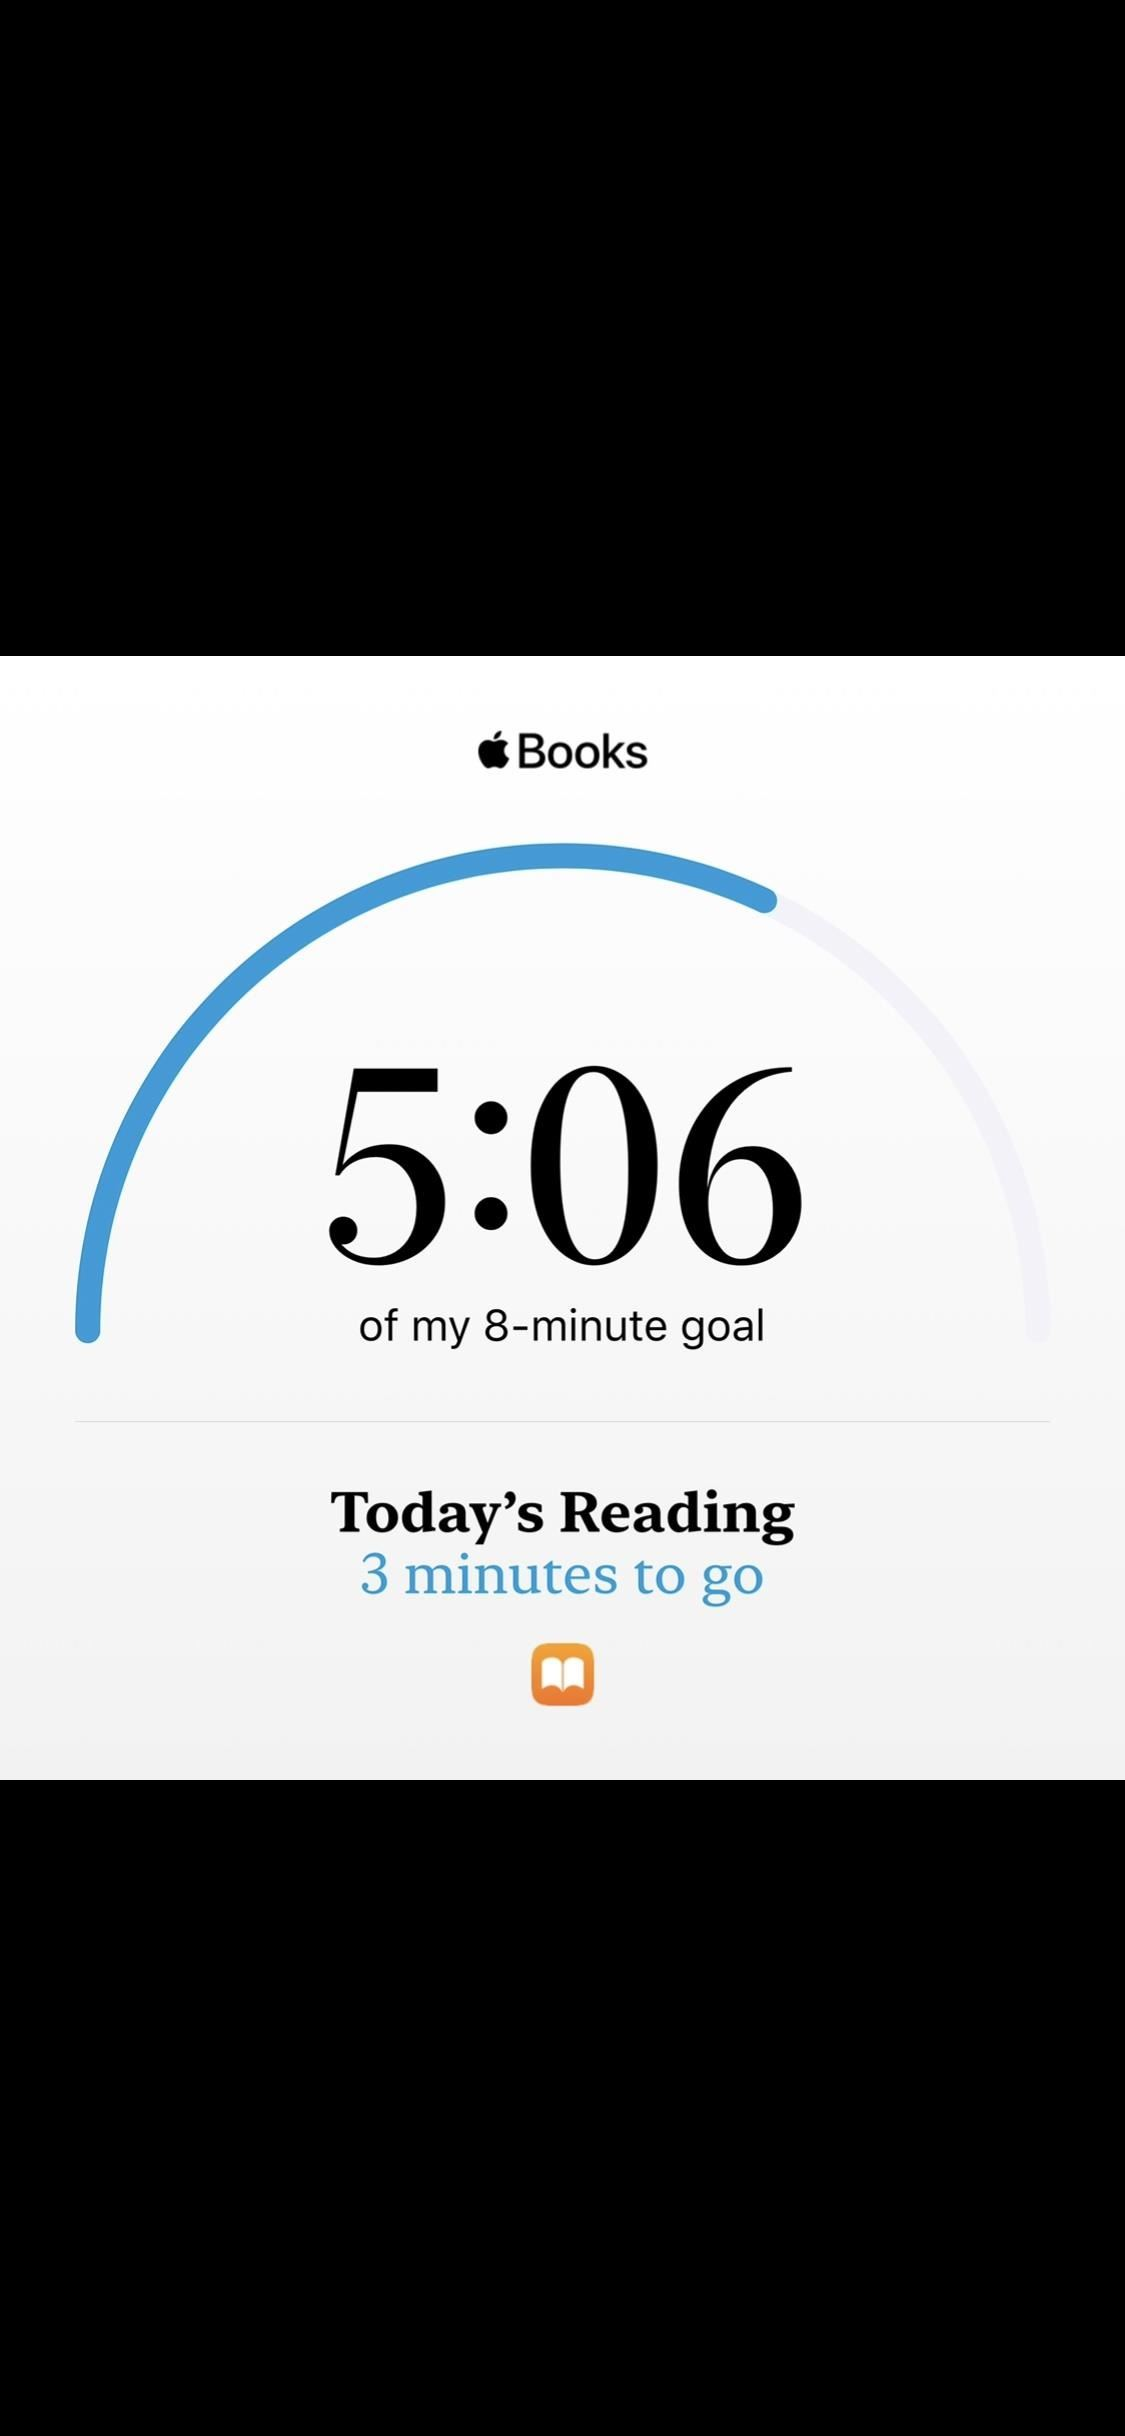 Become a Better Reader Using Apple Books' Reading Goals